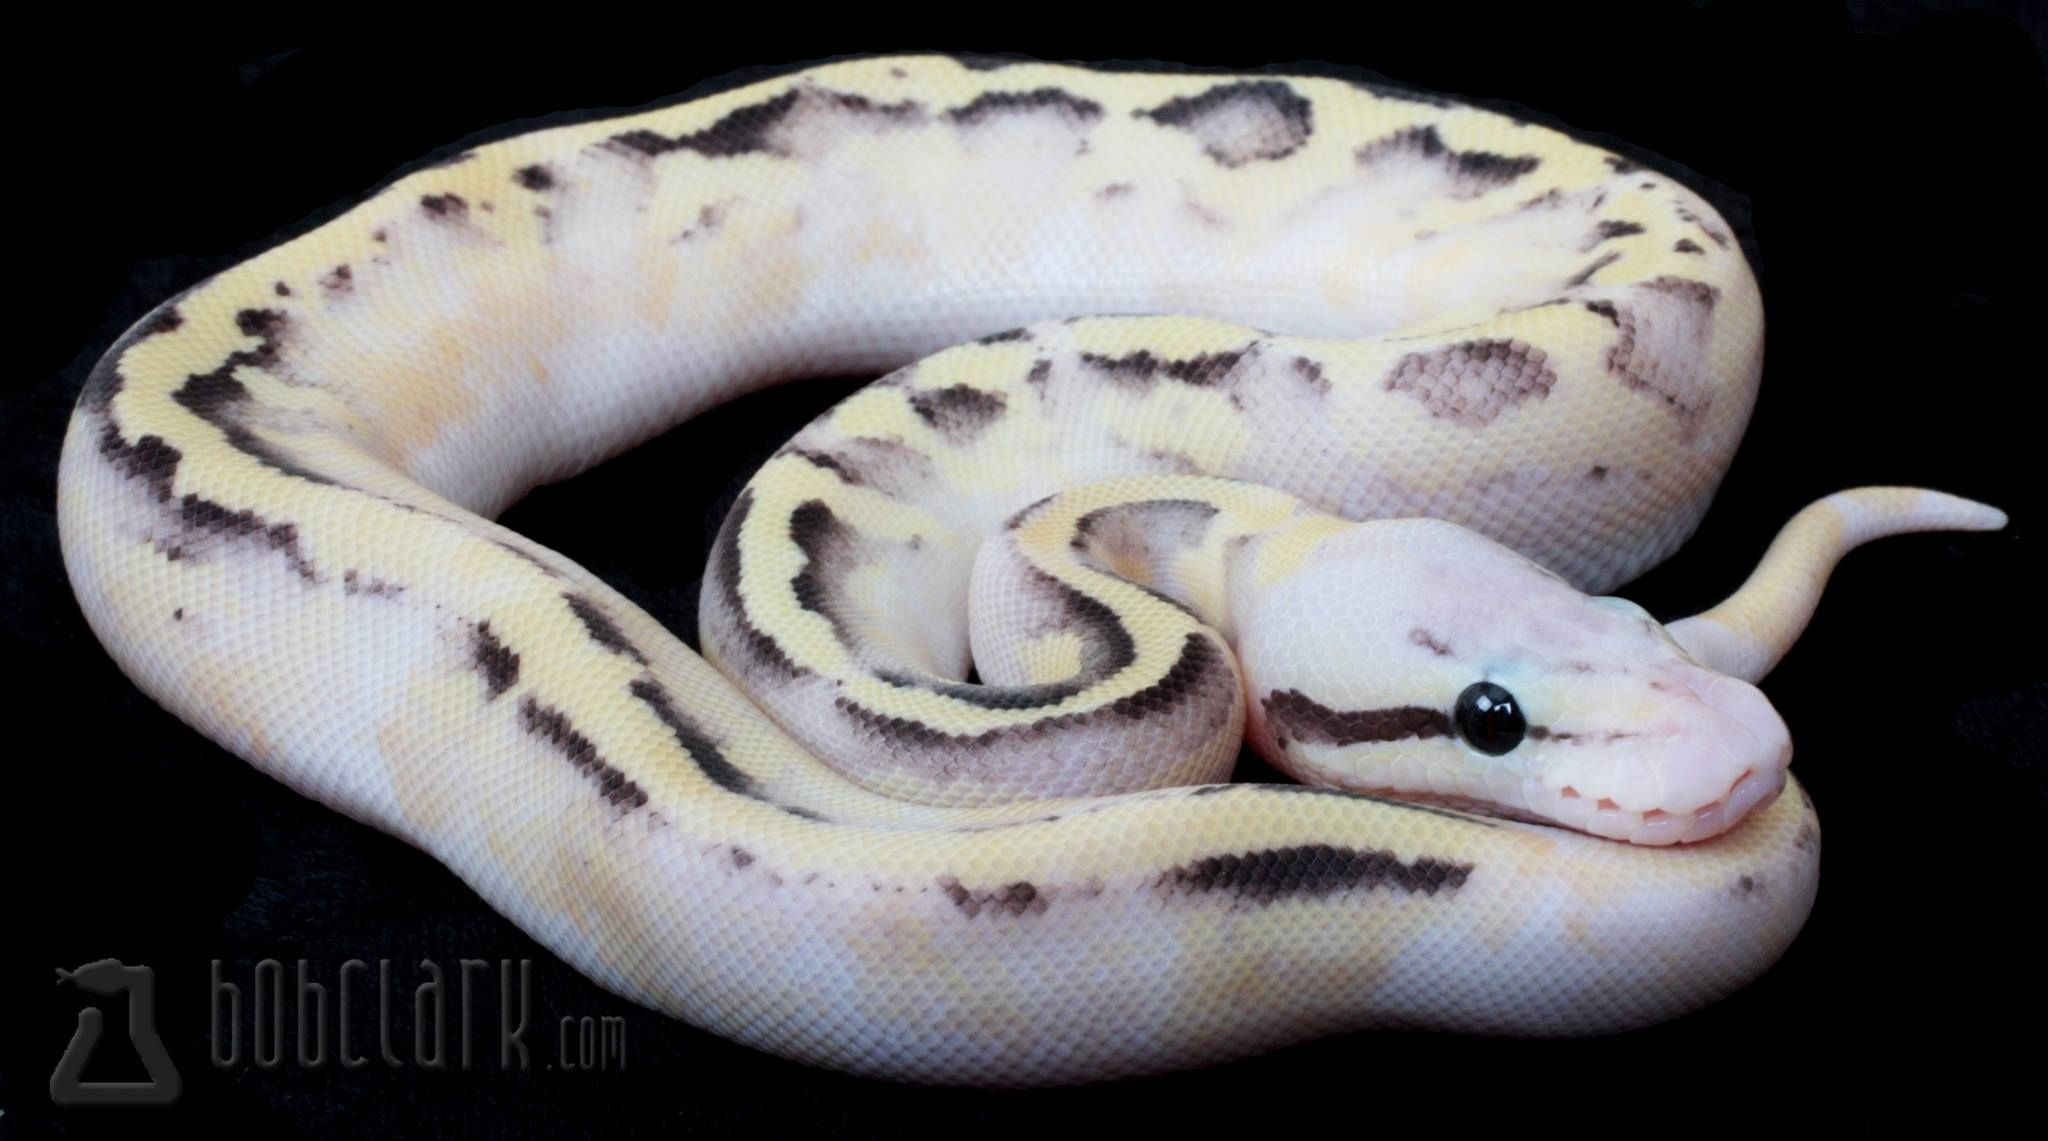 vanilla scream ball python.